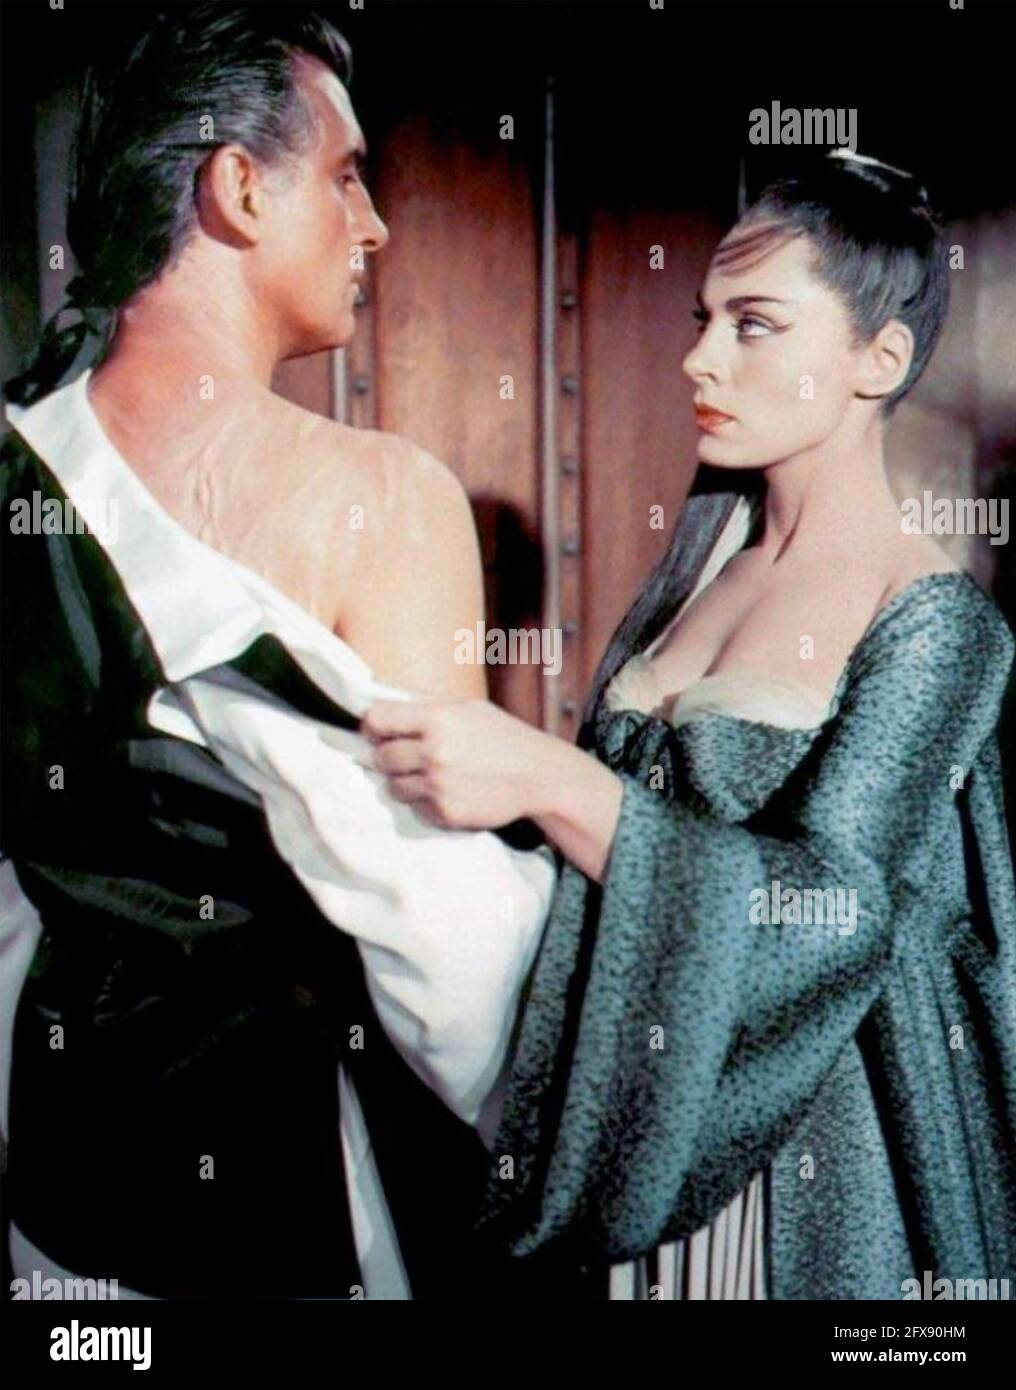 MOONFLEET 1956 MGM film with Viveca Lindfors and Stewart Granger Stock Photo